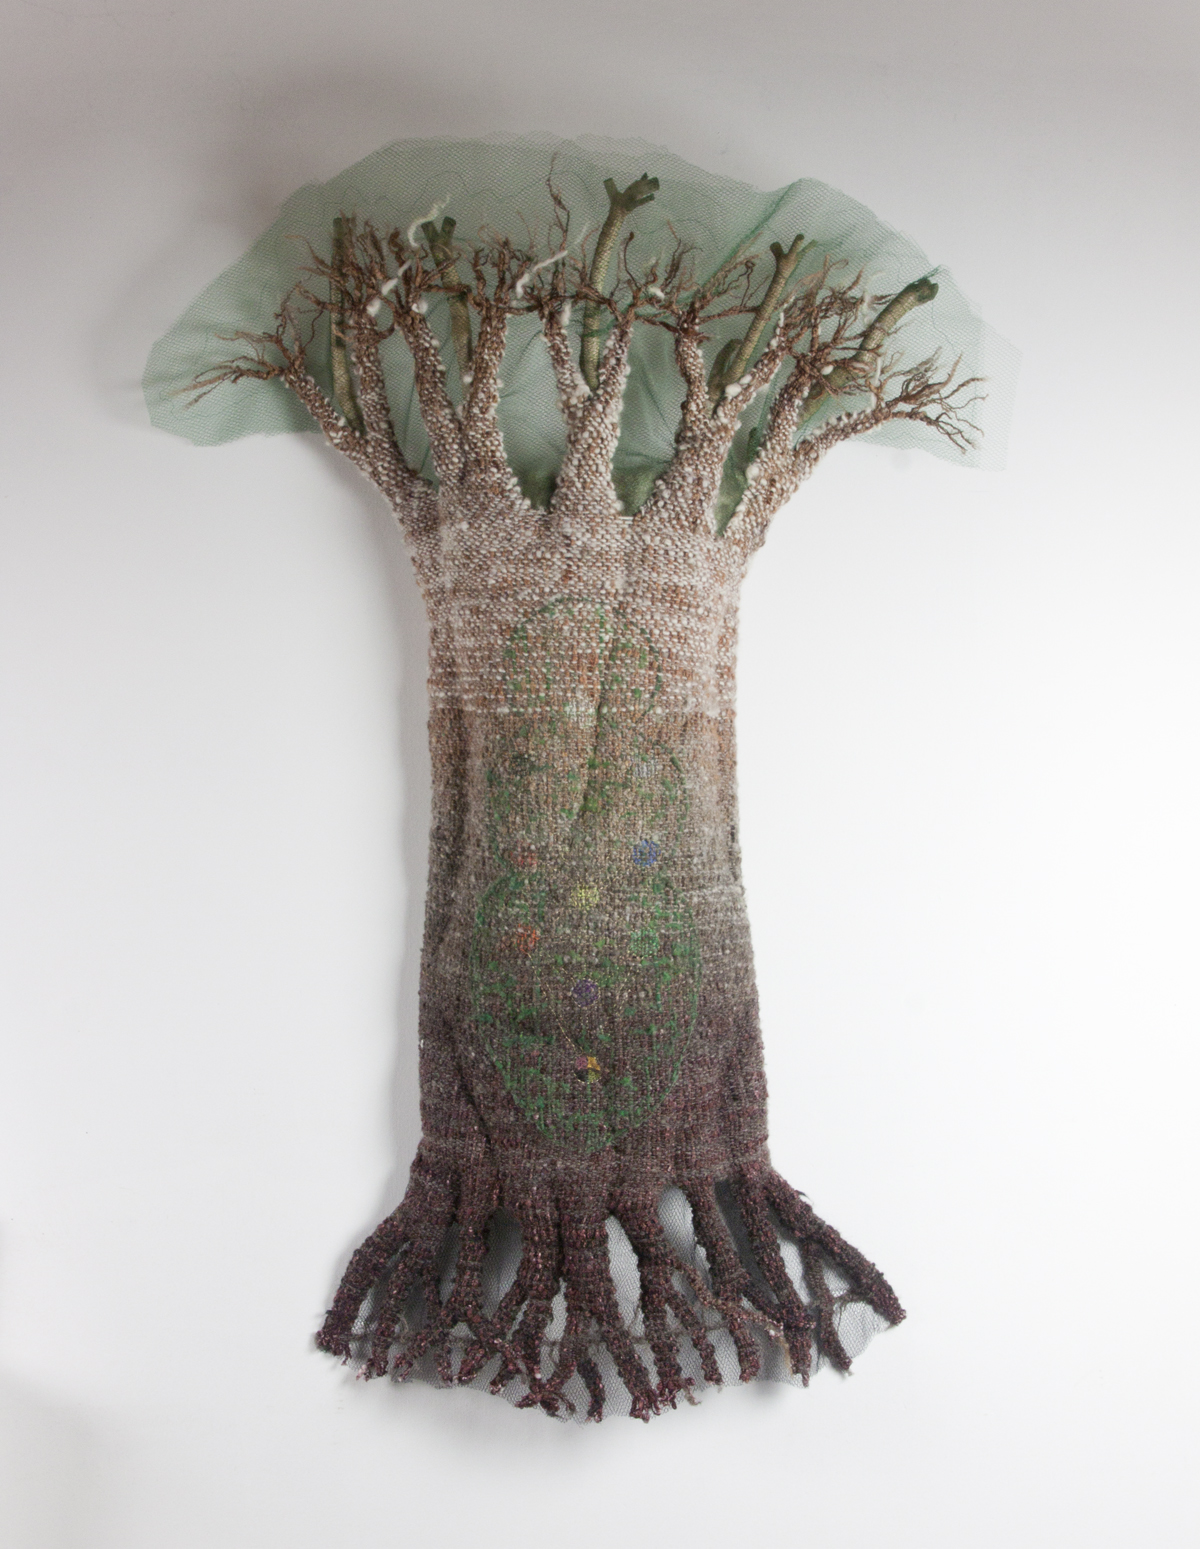 Mother Tree - Asherah, Handwoven fabric with embellishment on wire frame.